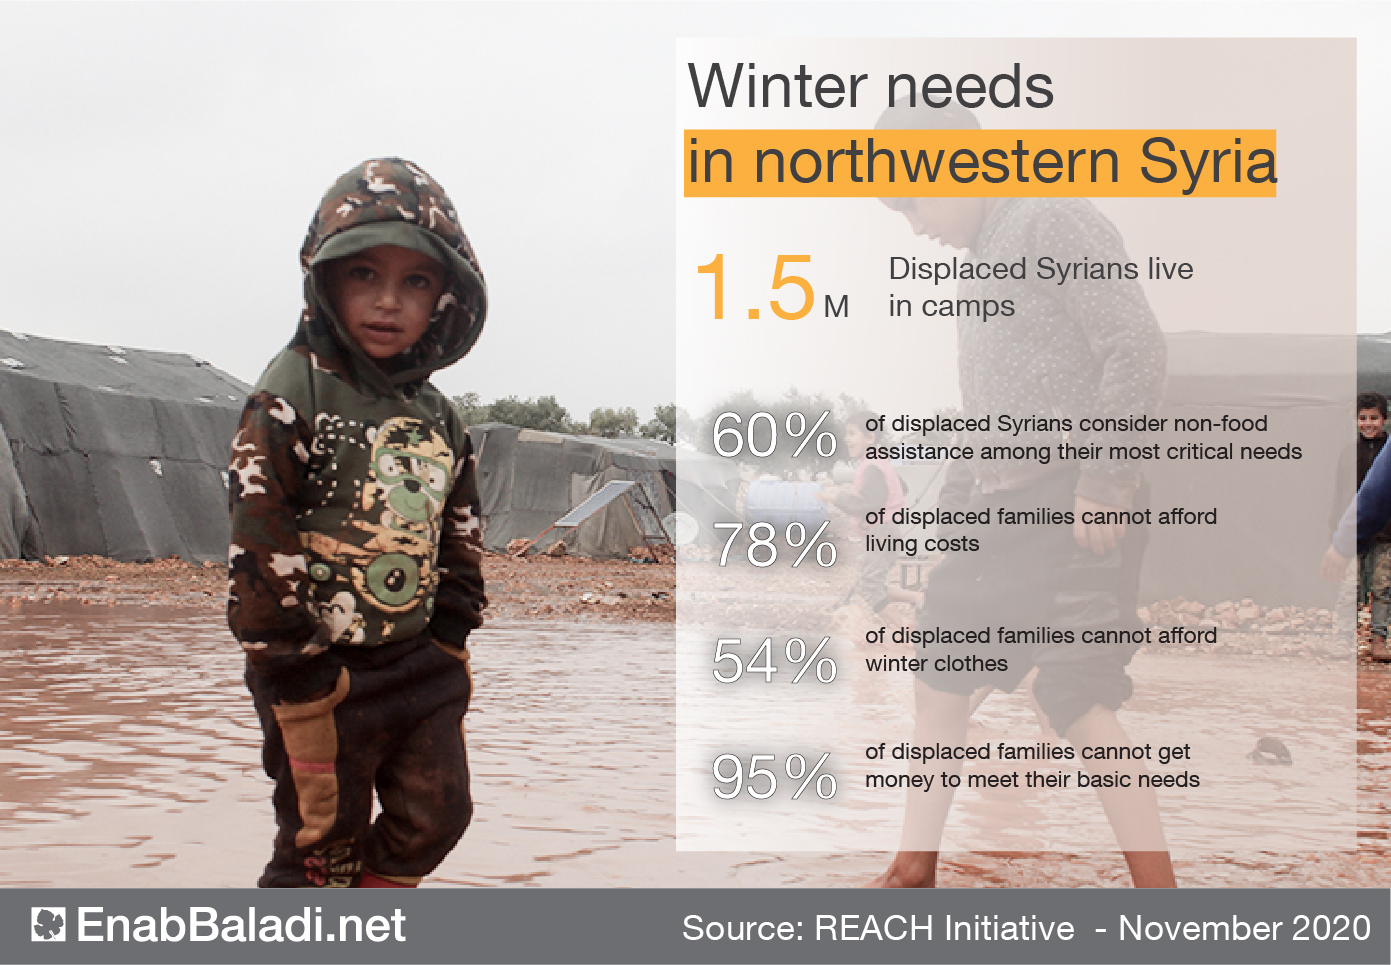 Winter needs in northwestern Syria